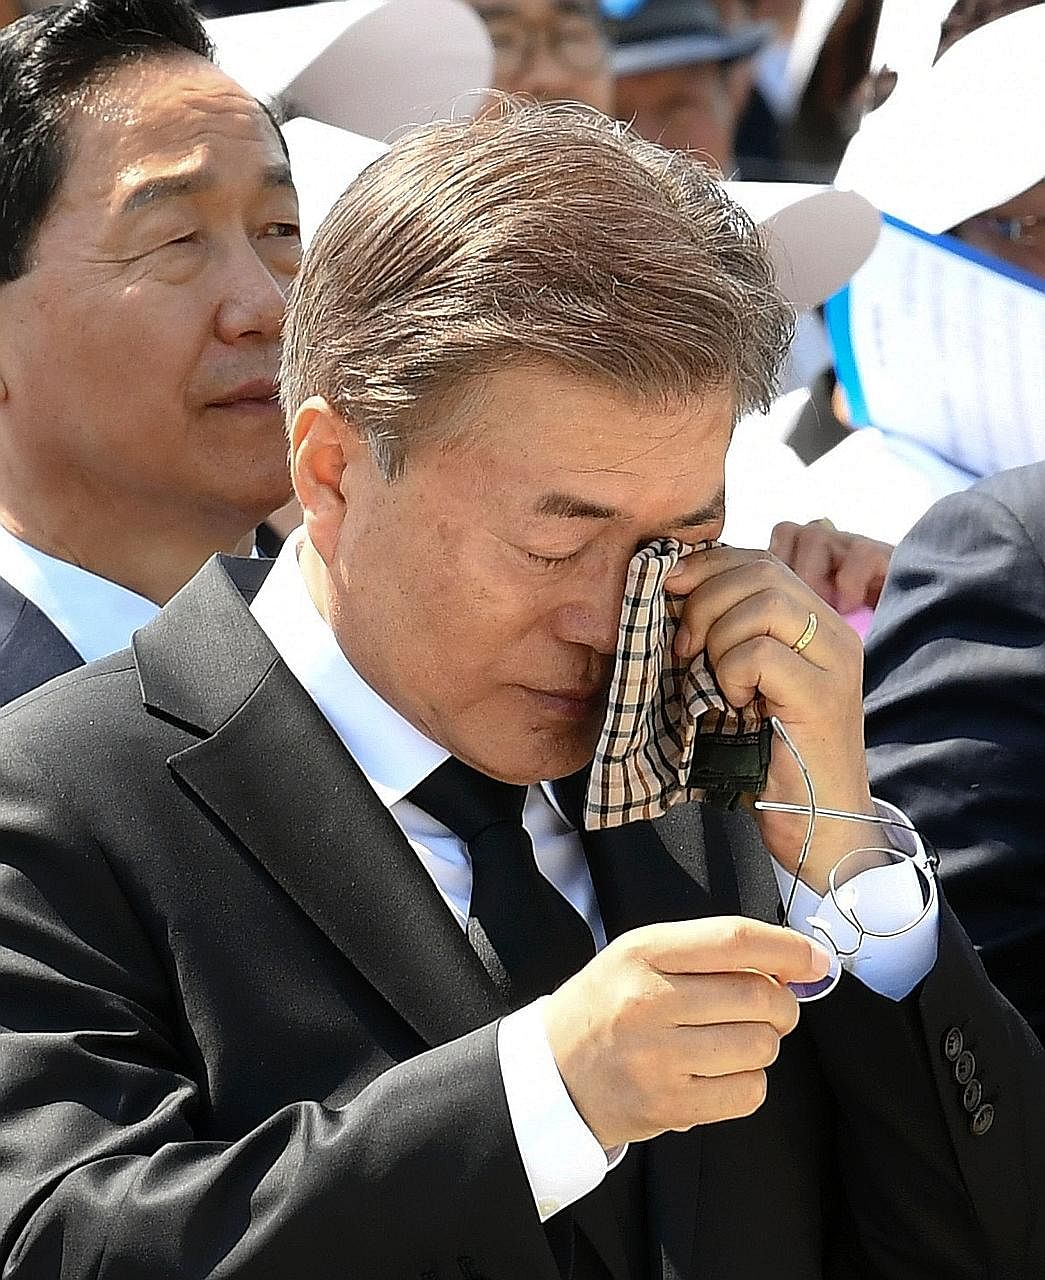 An emotional President Moon Jae In at a ceremony to mark the anniversary of the crackdown in Gwangju, which left more than 165 people dead and over 70 missing and cemented then General Chun Doo Hwan's grip on the country. The annual event was held at